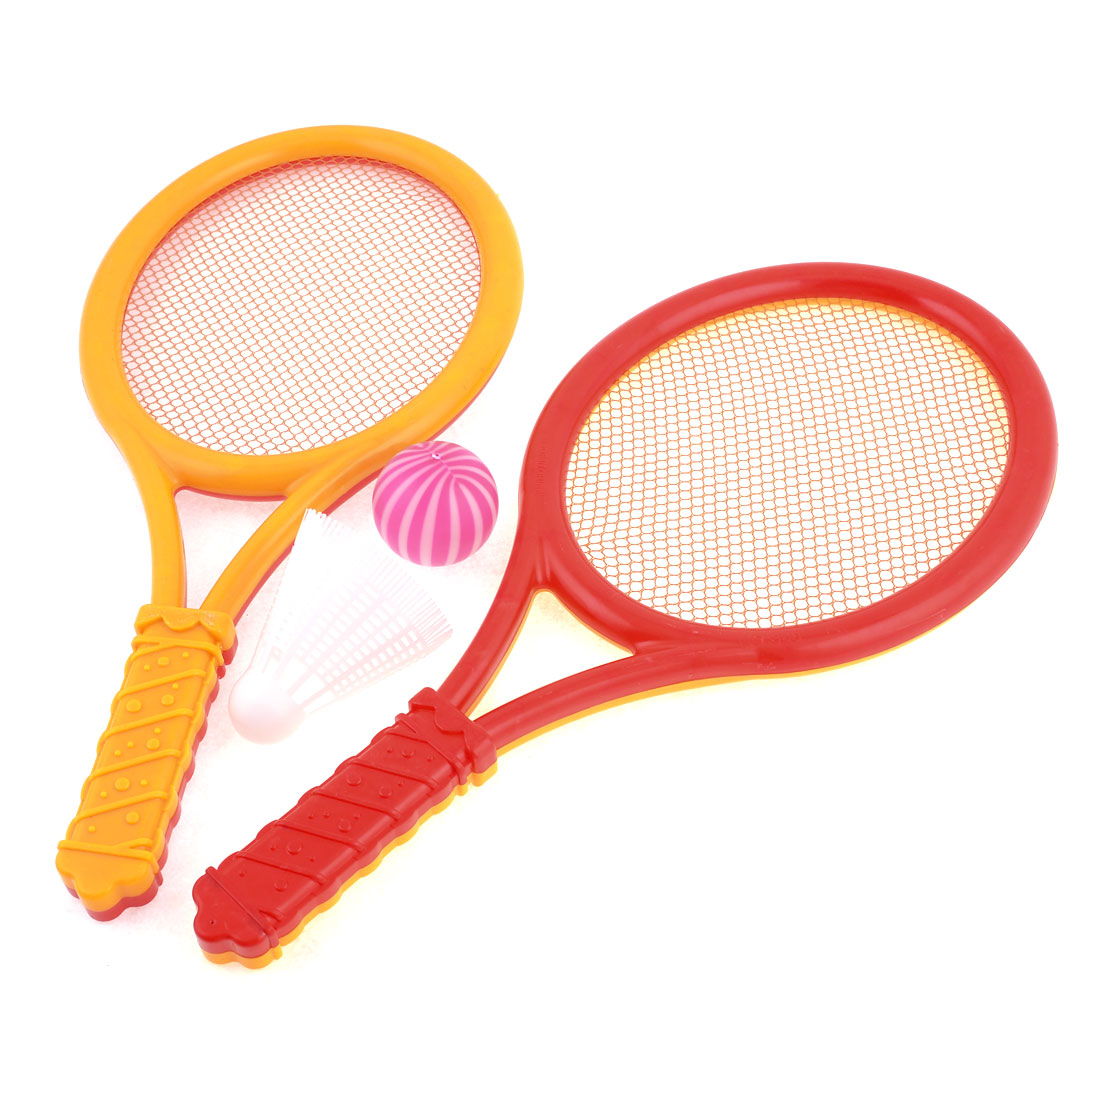 Pair Kids Game Playing Yellow Red Plastic Badminton Racket Set w Pingpong Ball